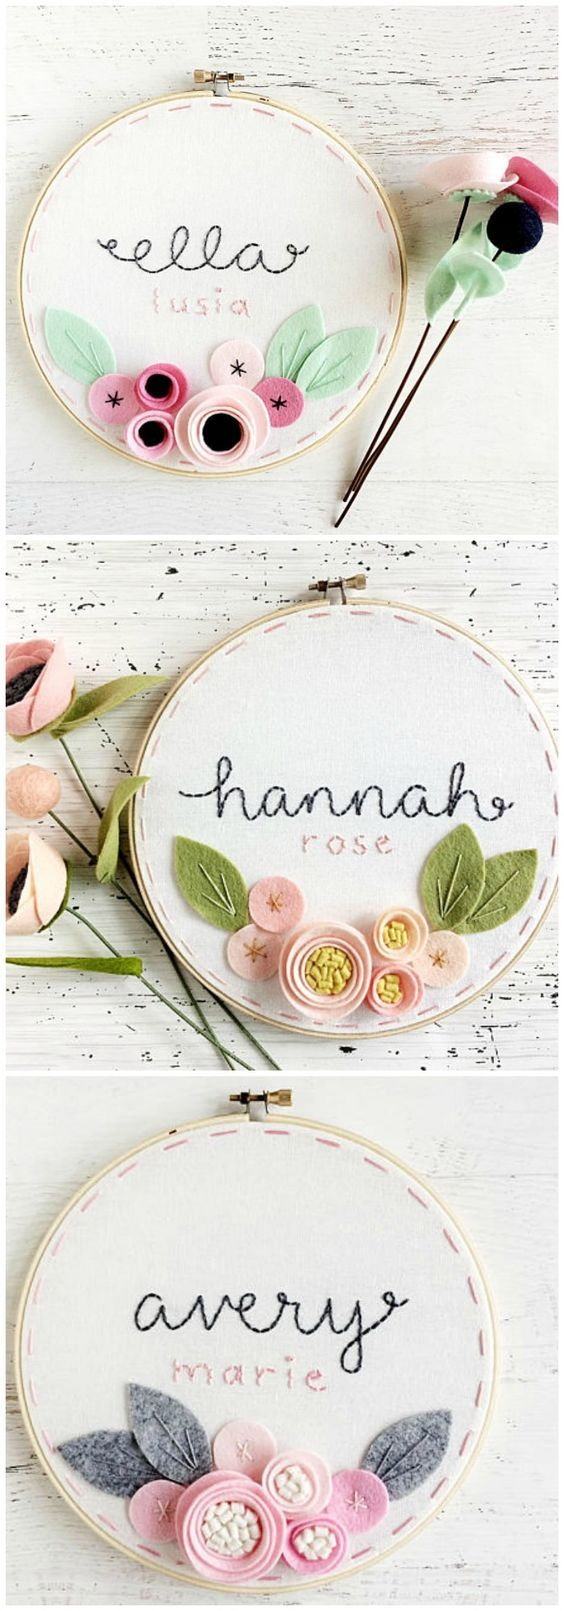 8 floral name hoop personalized felt and embroidery hoop art 8 floral name hoop personalized felt and embroidery hoop art nursery decor negle Image collections